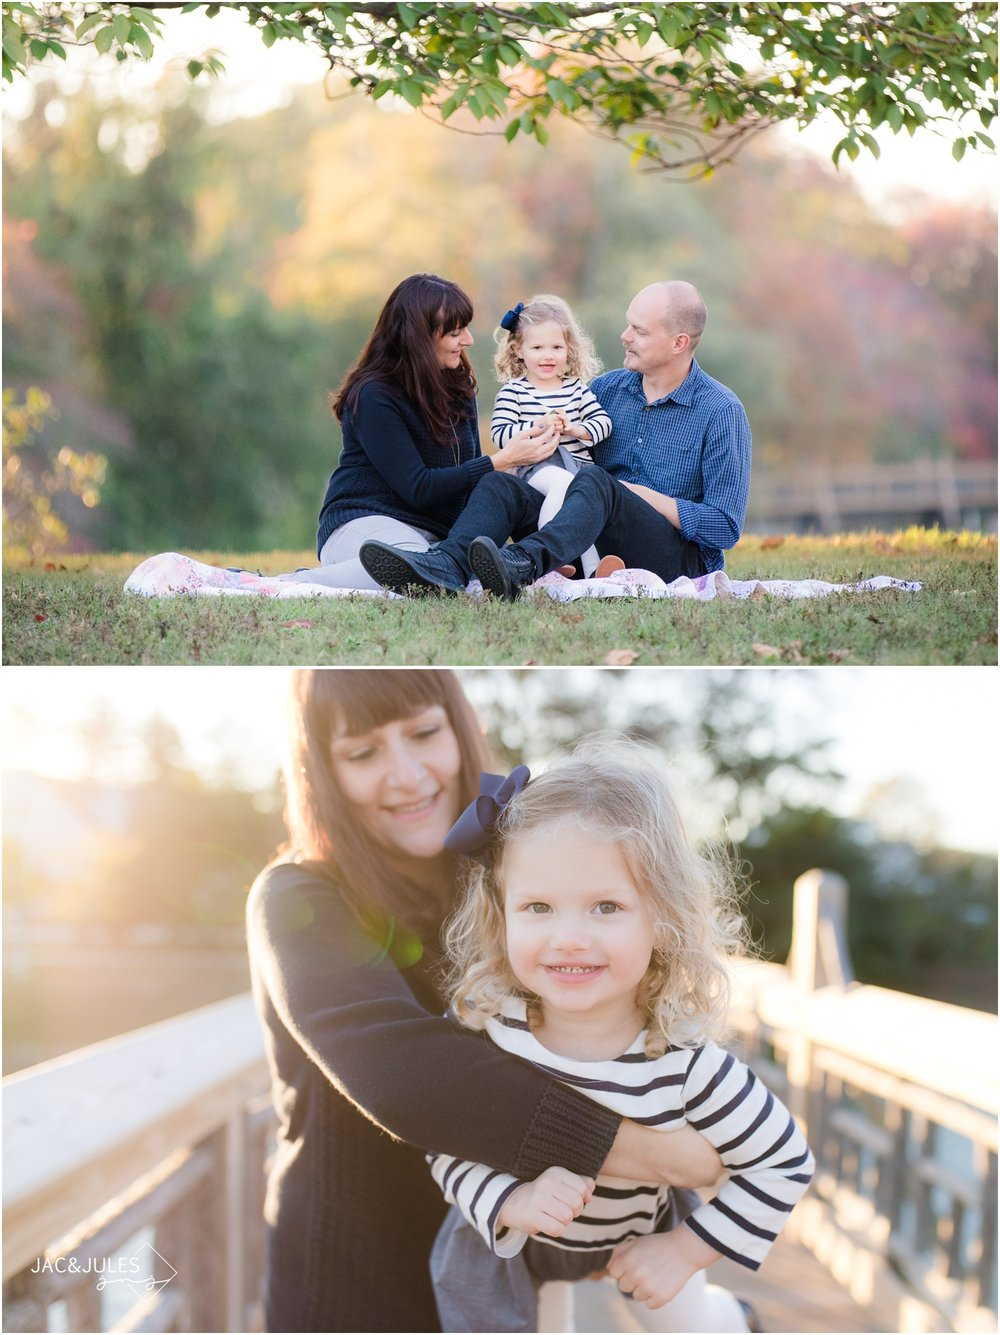 funny photos of family interacting for fall photos at Divine Park in Spring Lake, NJ.